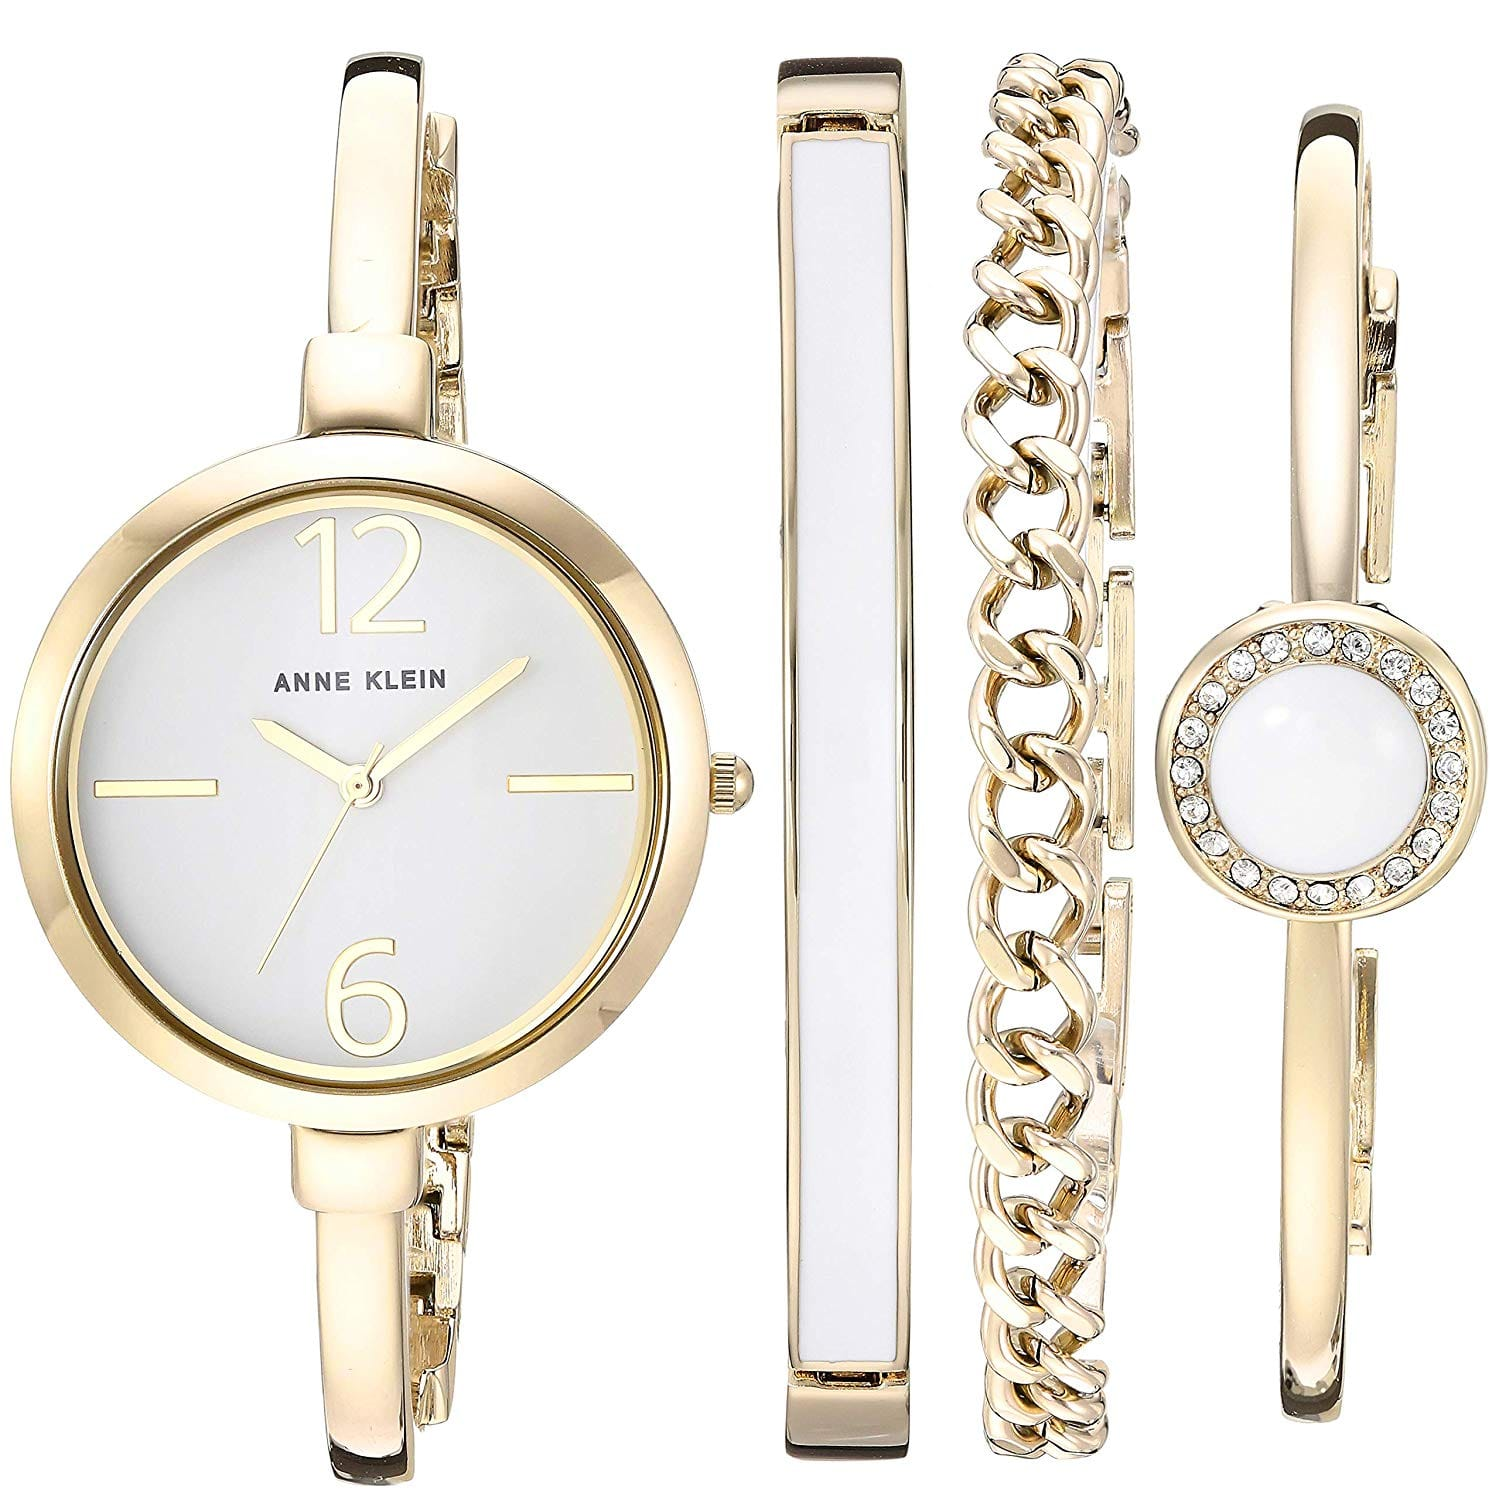 9deff83fc8b Anne Klein Women s AK 3290 Bangle Watch and Swarovski Crystal Accented Bracelet  Set  49.99